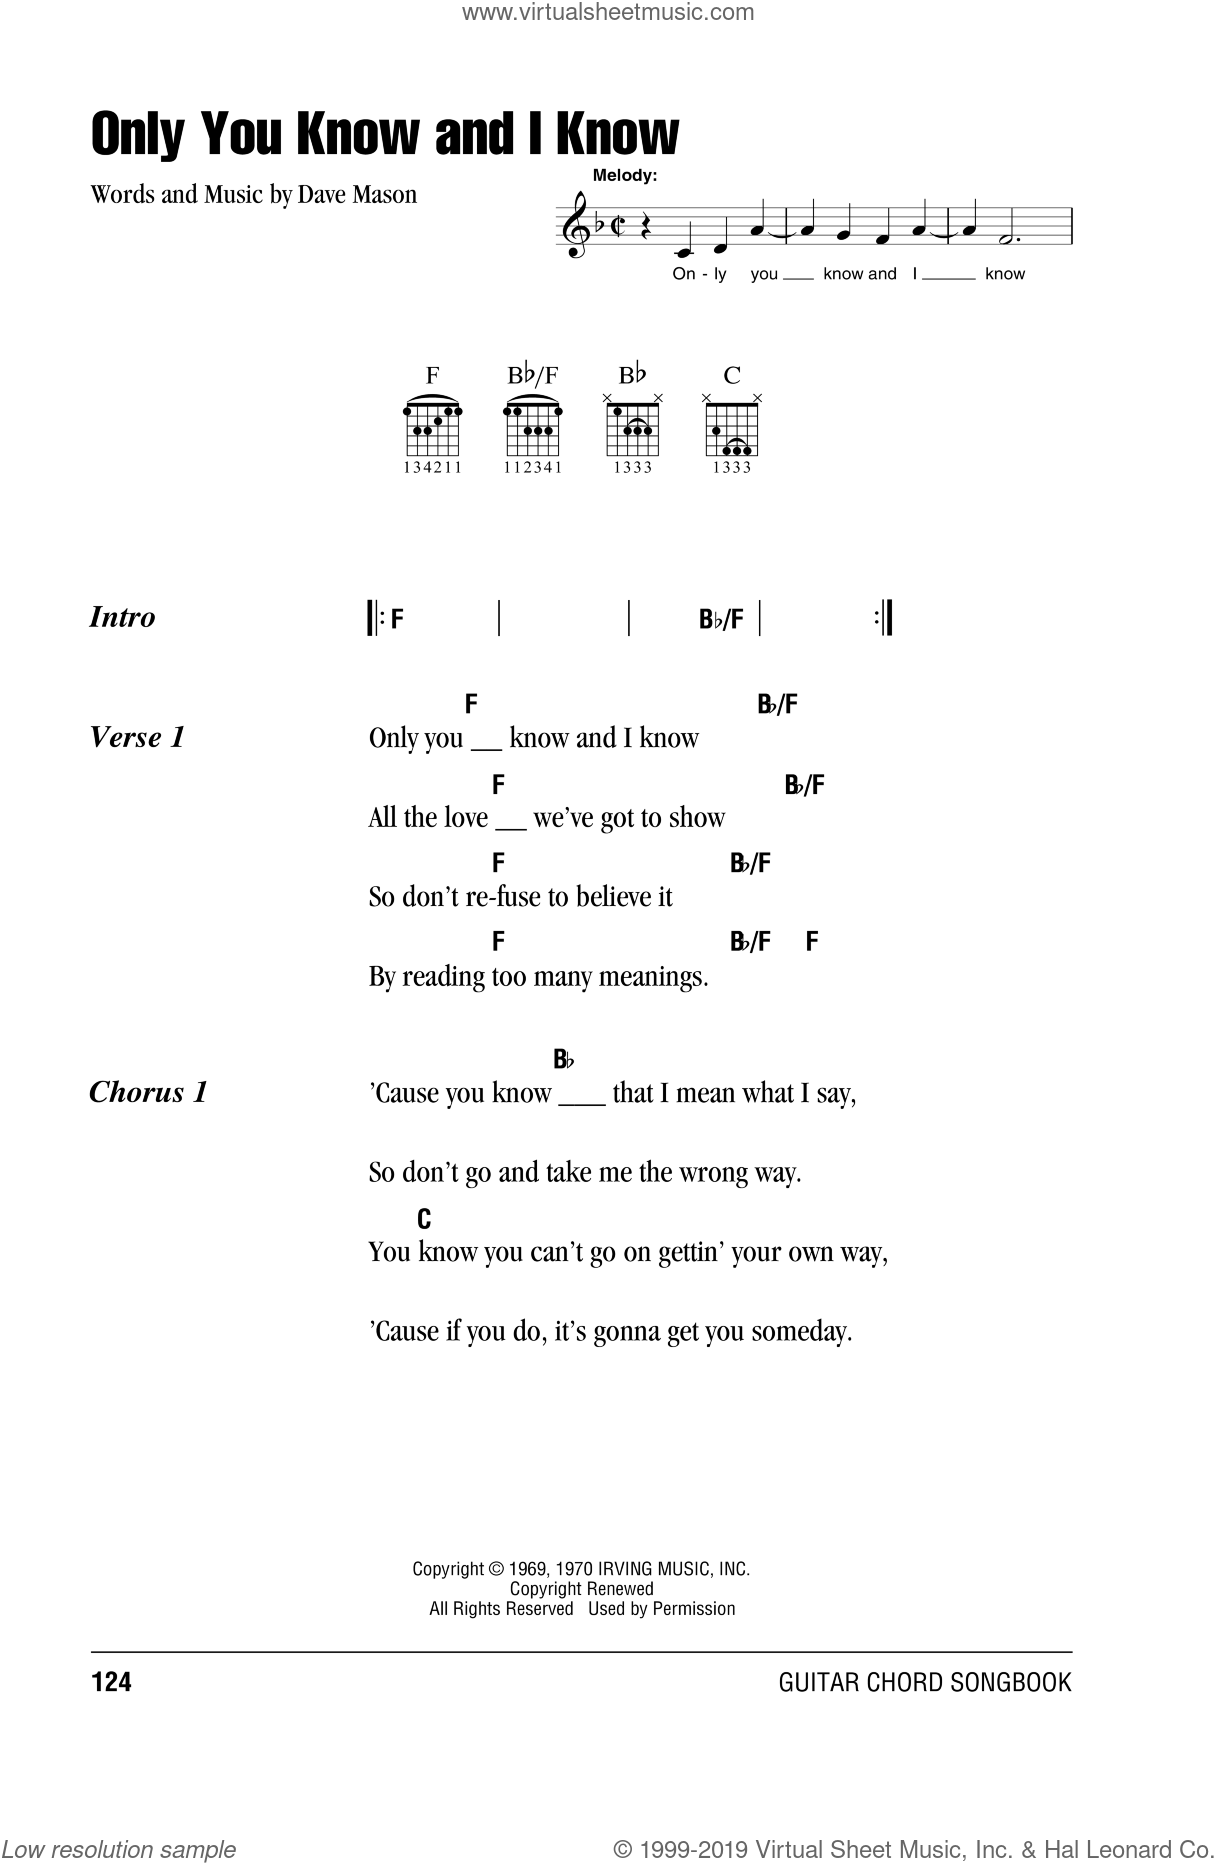 Only You Know And I Know sheet music for guitar (chords) by Dave Mason